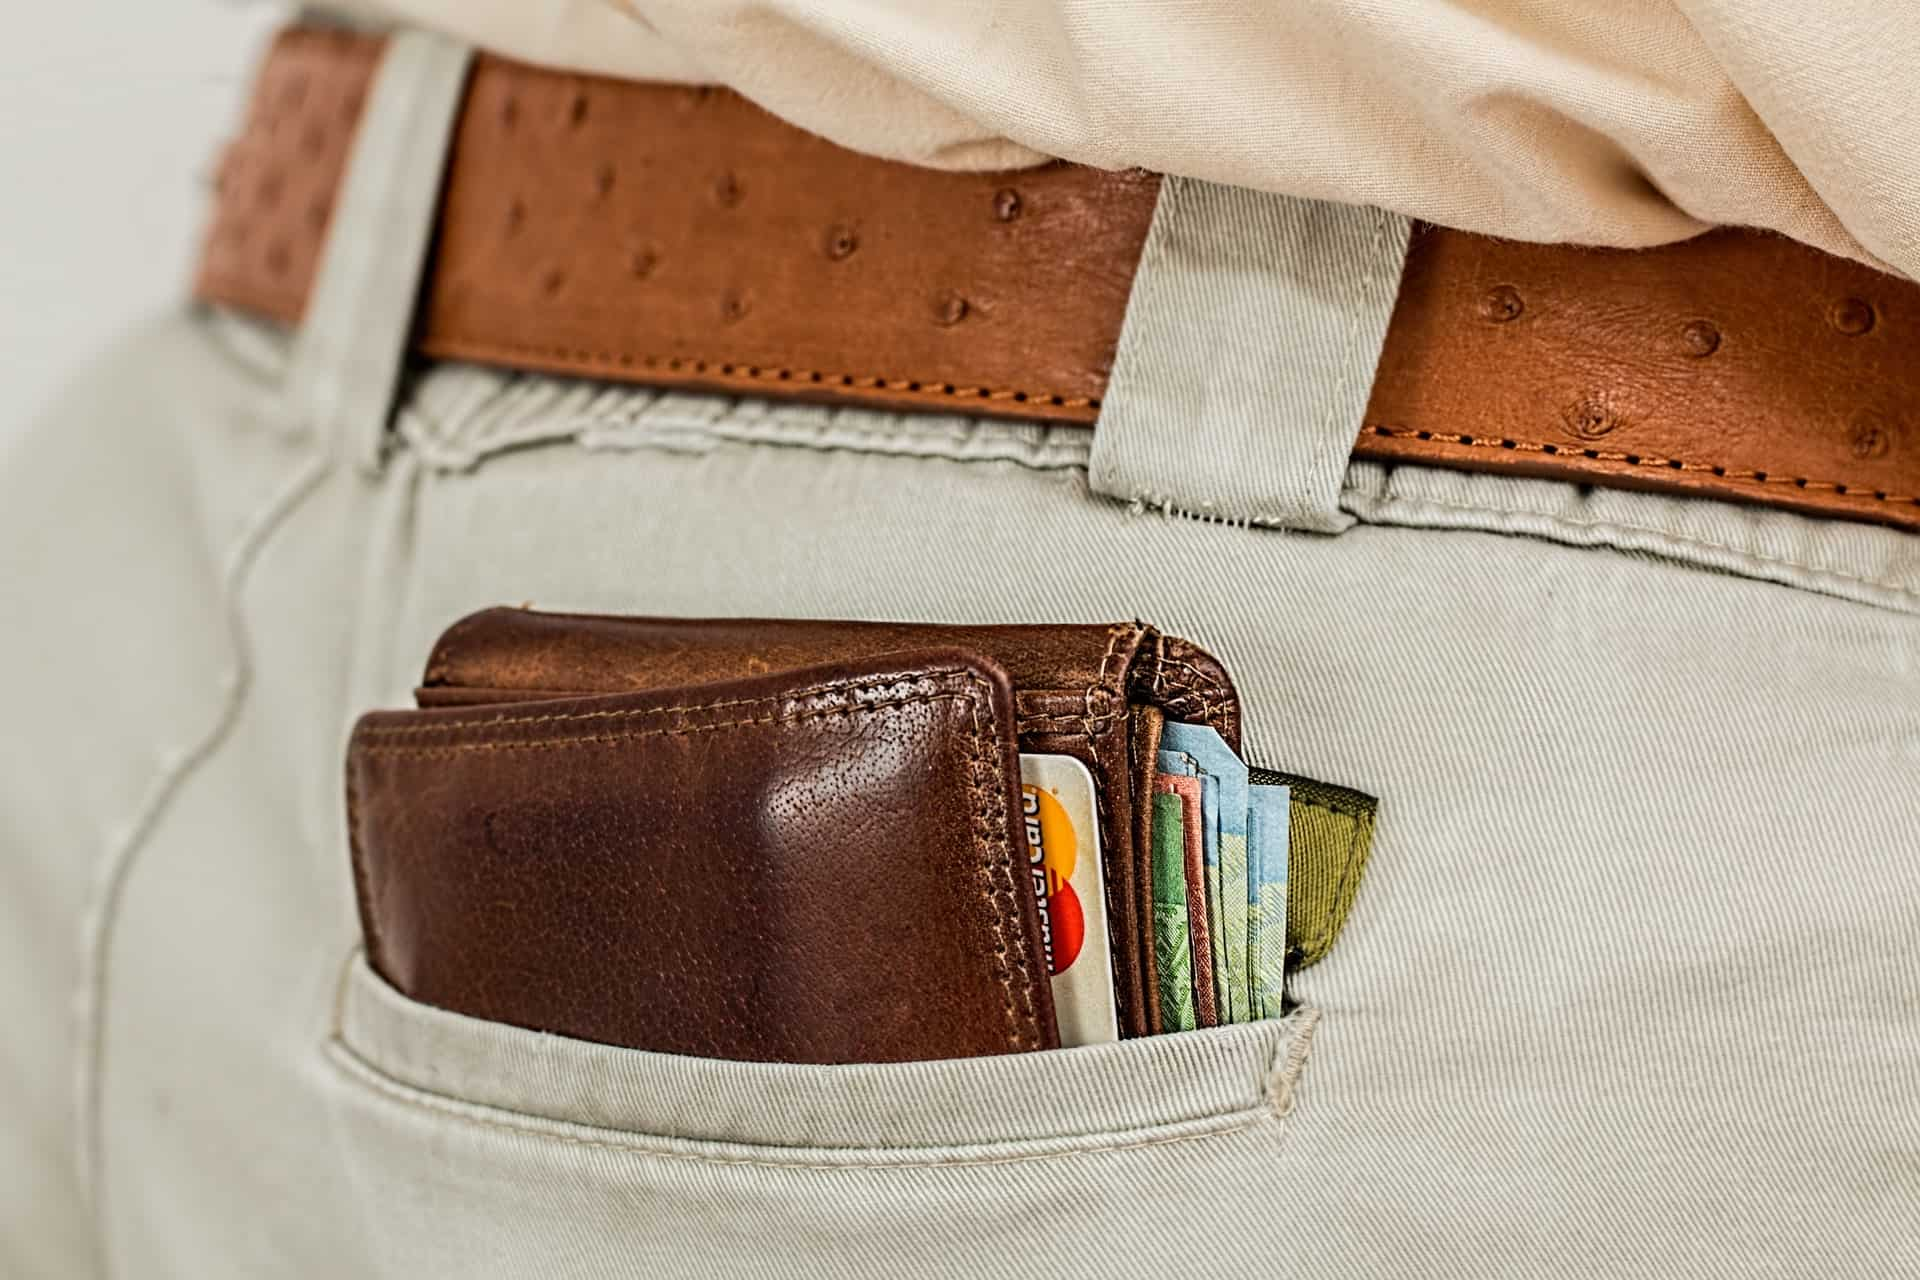 wallet in a pocket